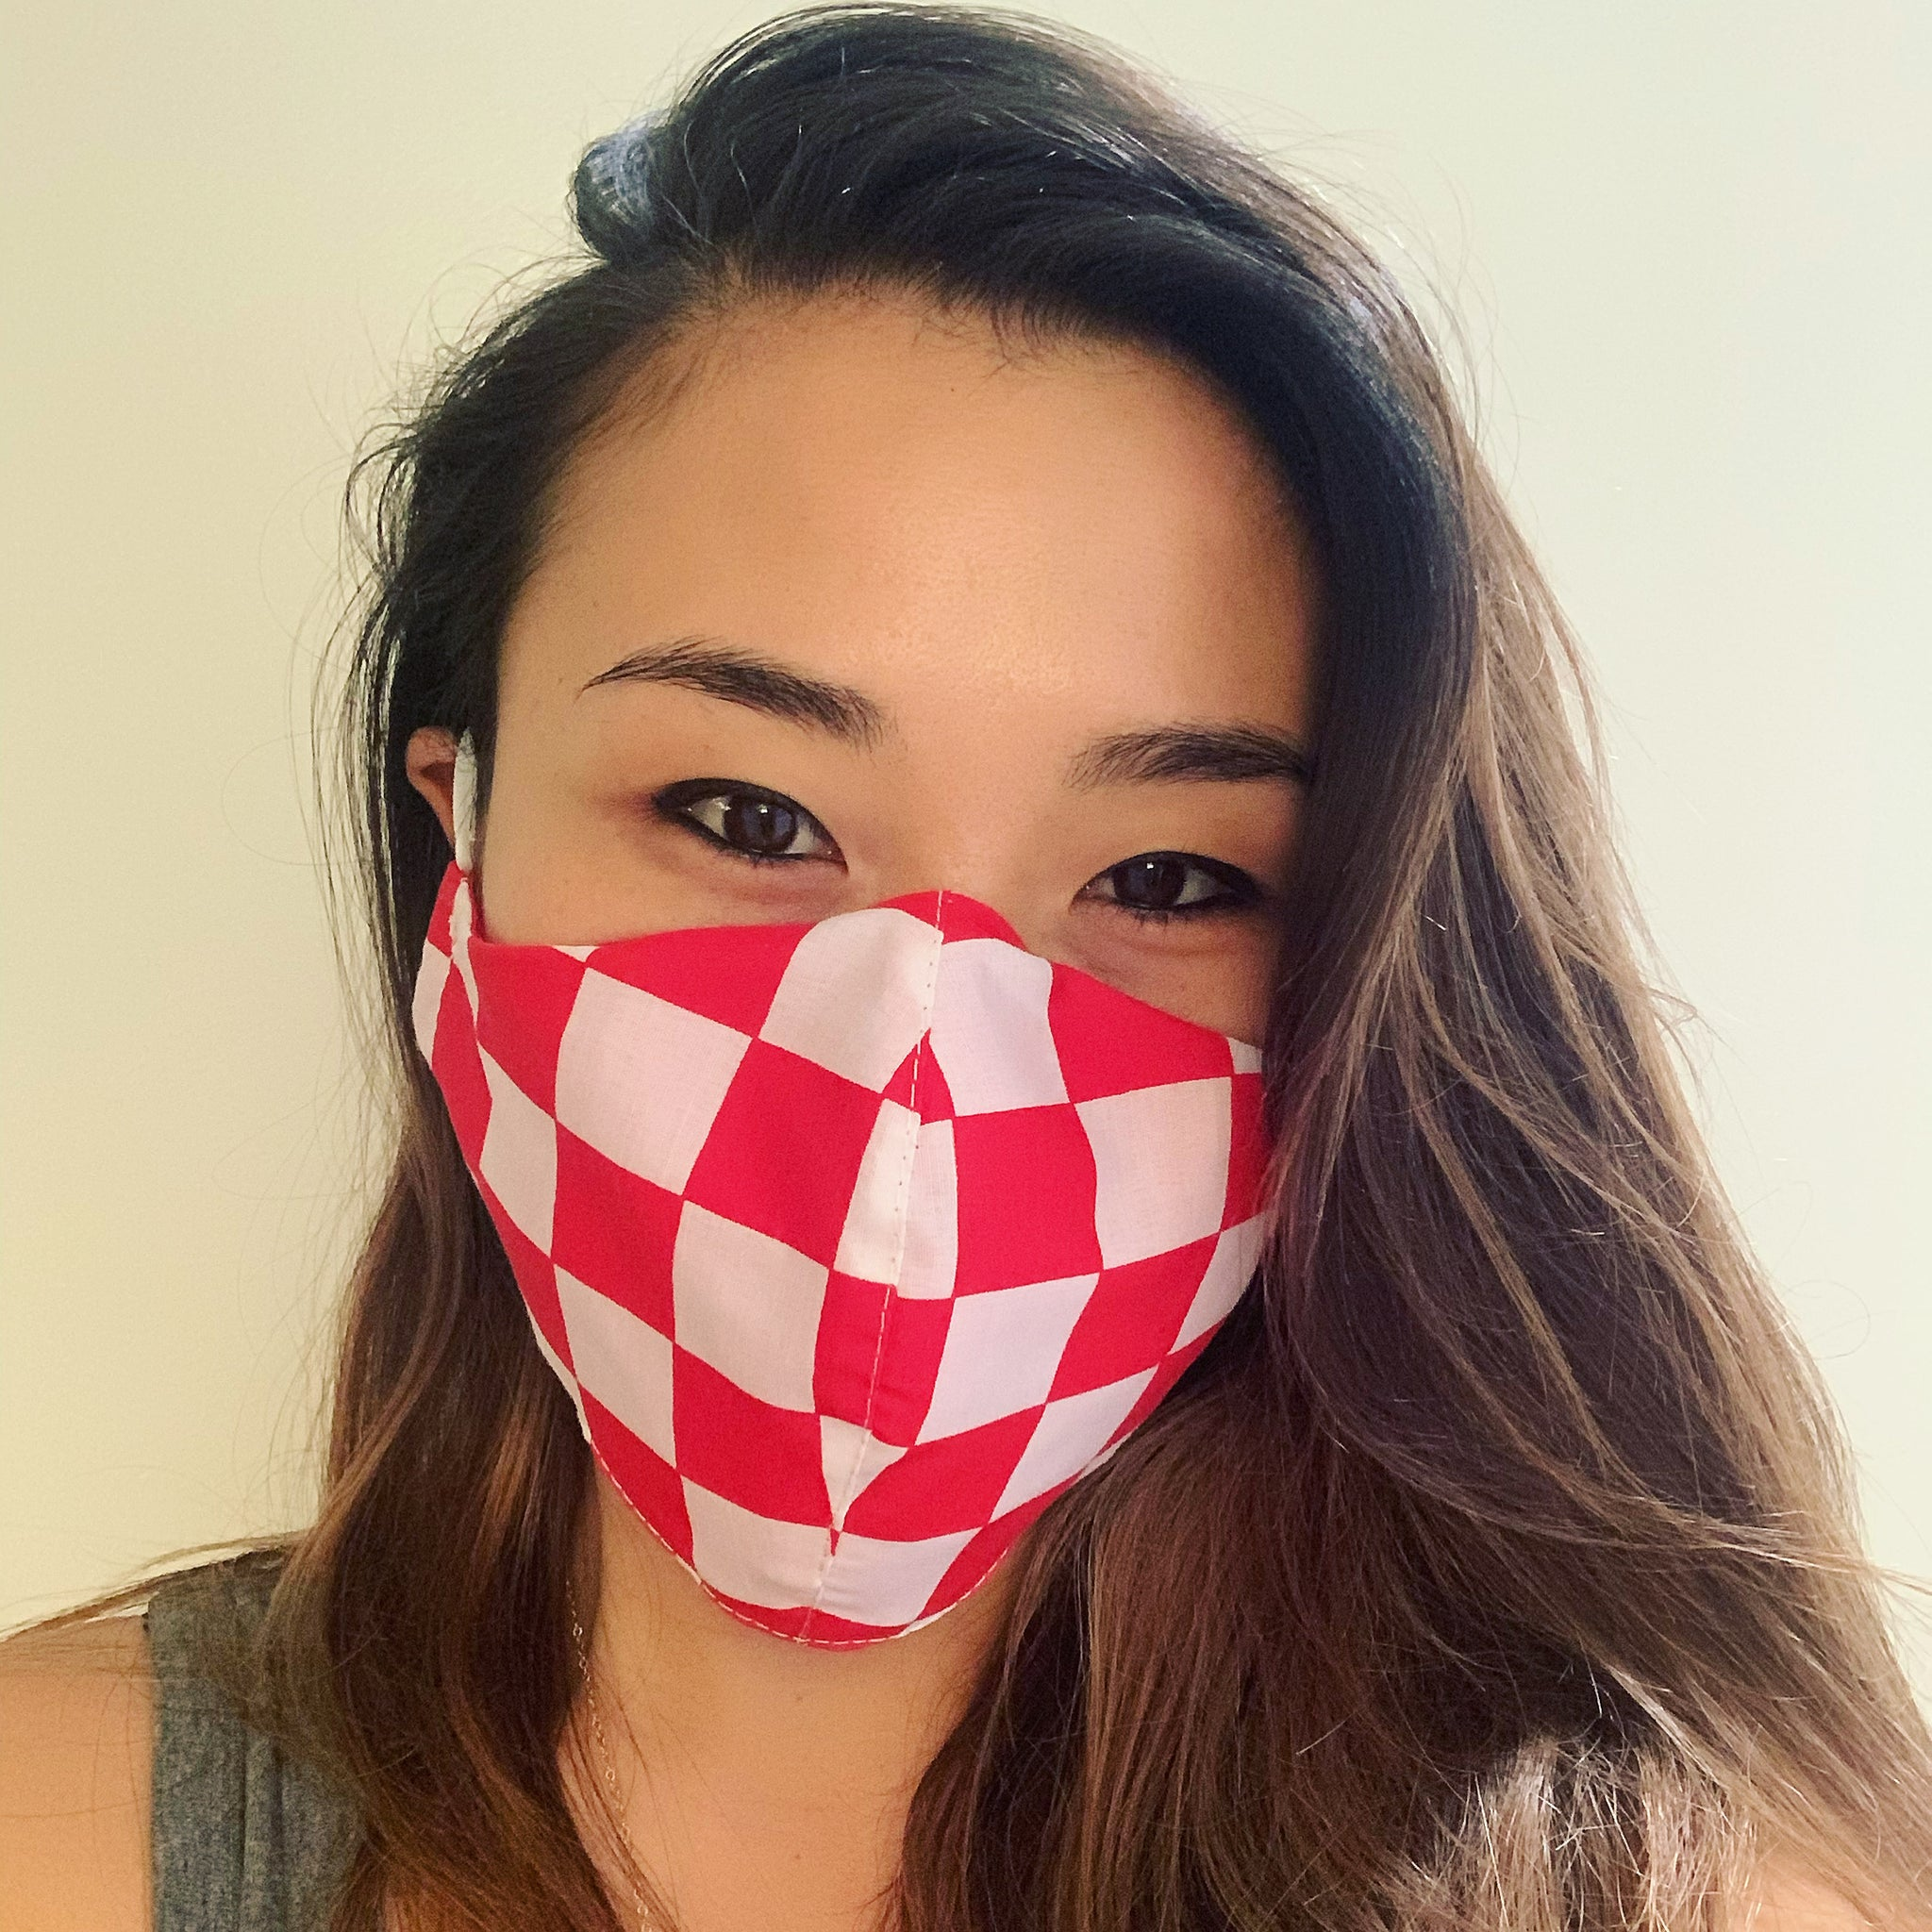 Red Checkers Face Mask with Filter